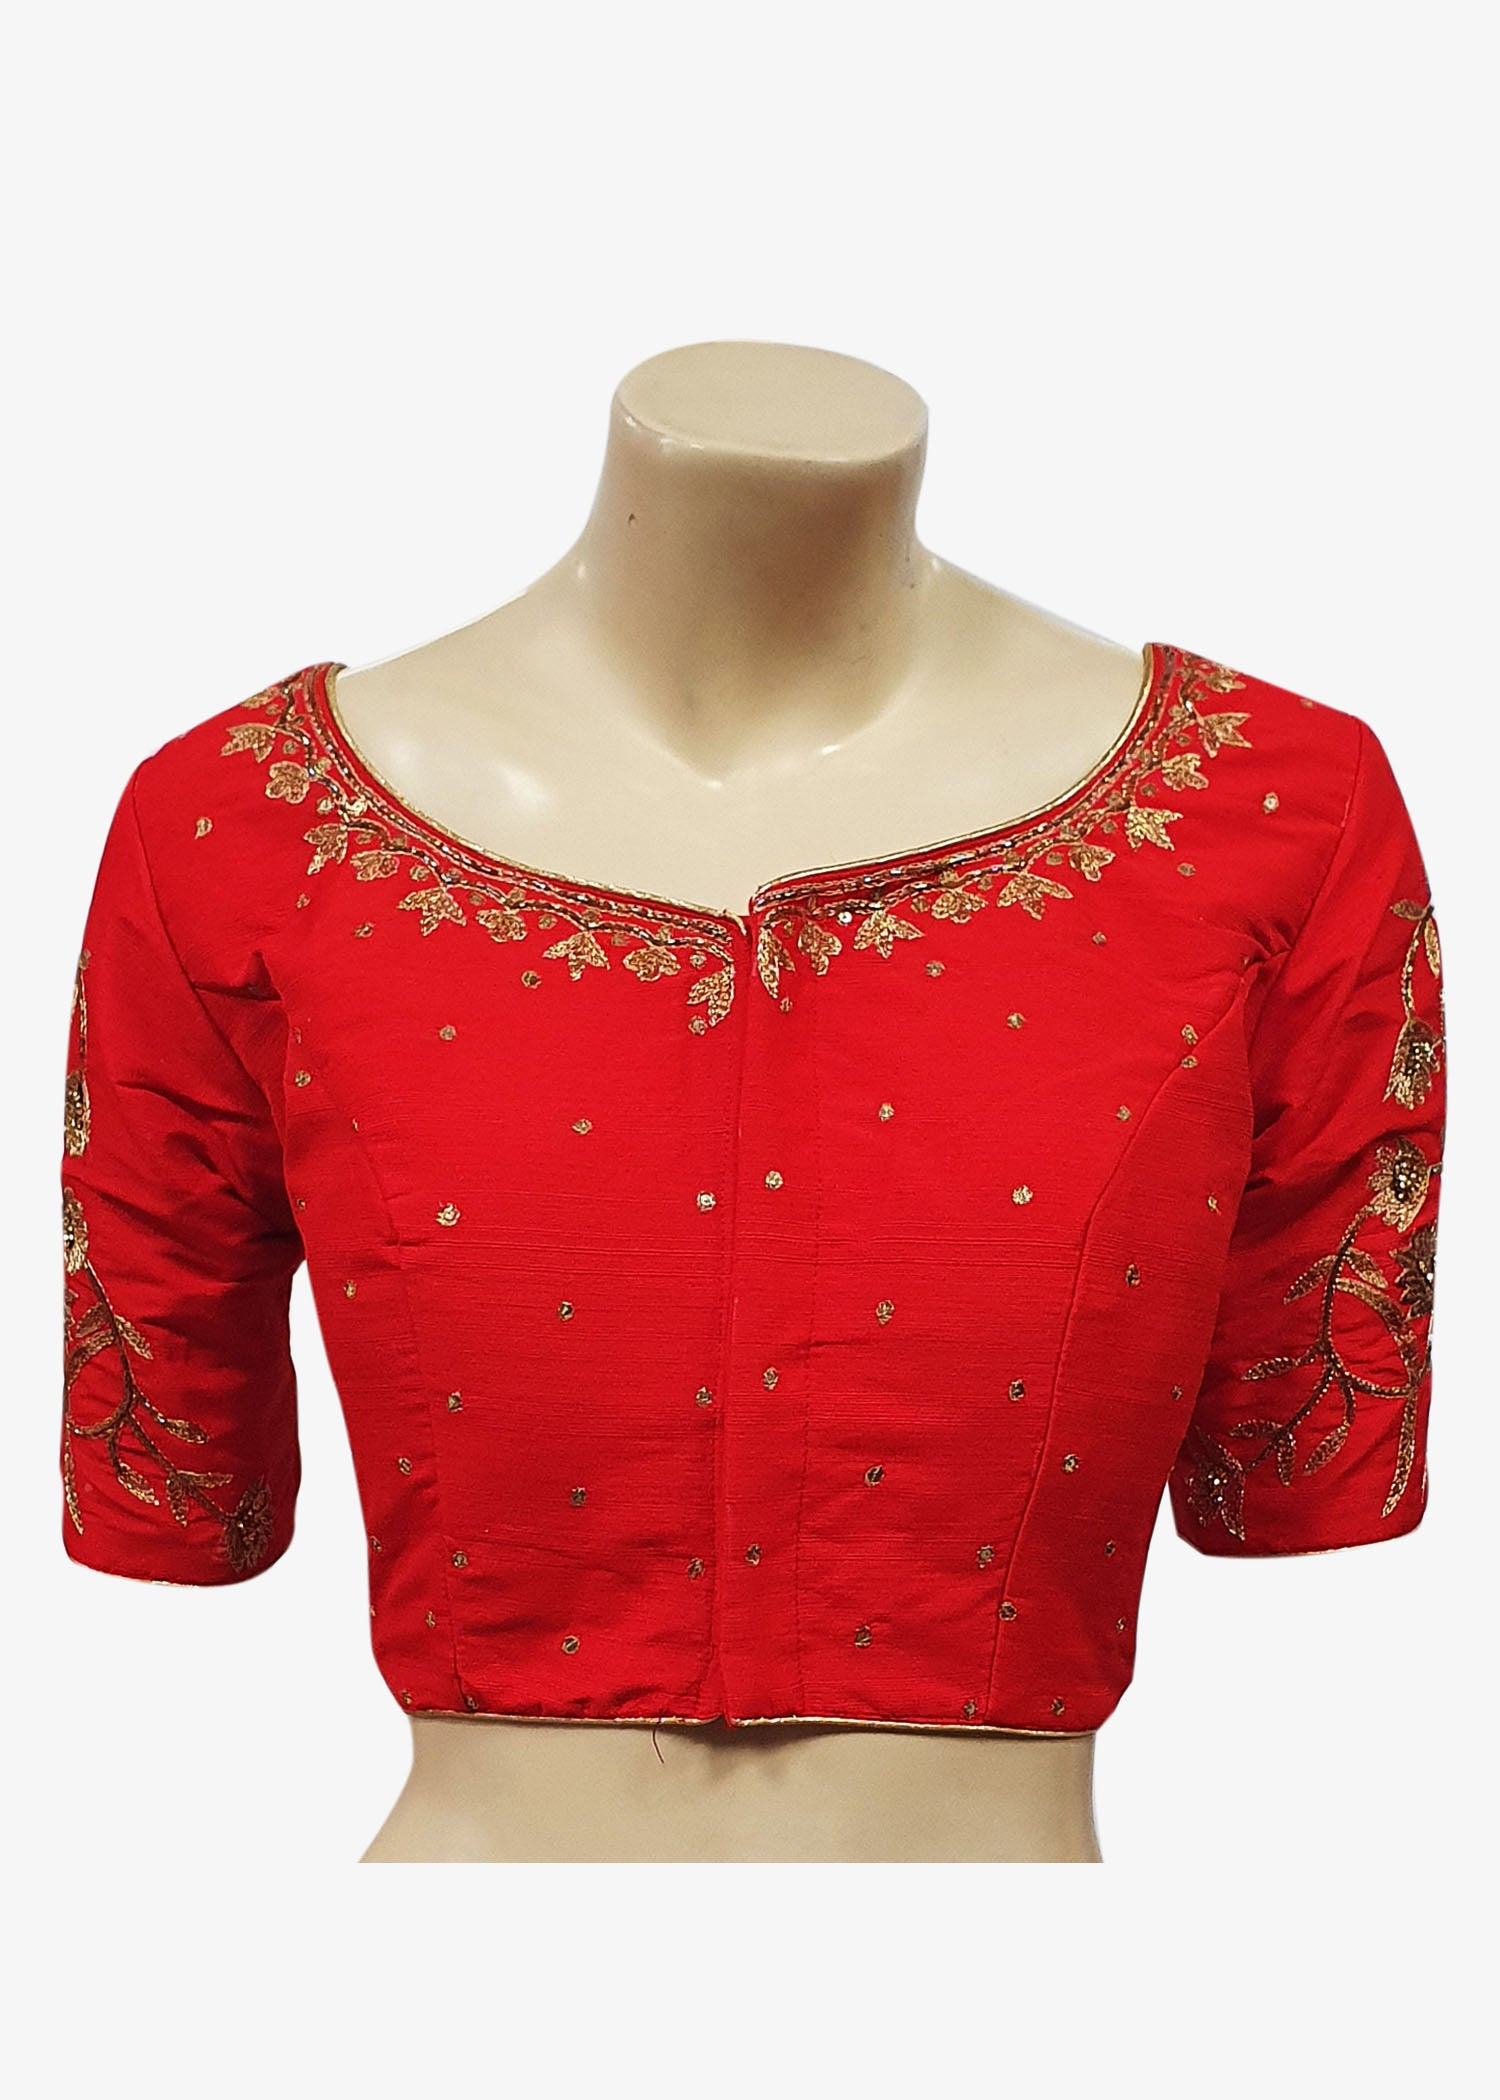 Red Raw Silk Gold Embroidered Saree Blouse - Front Hooks